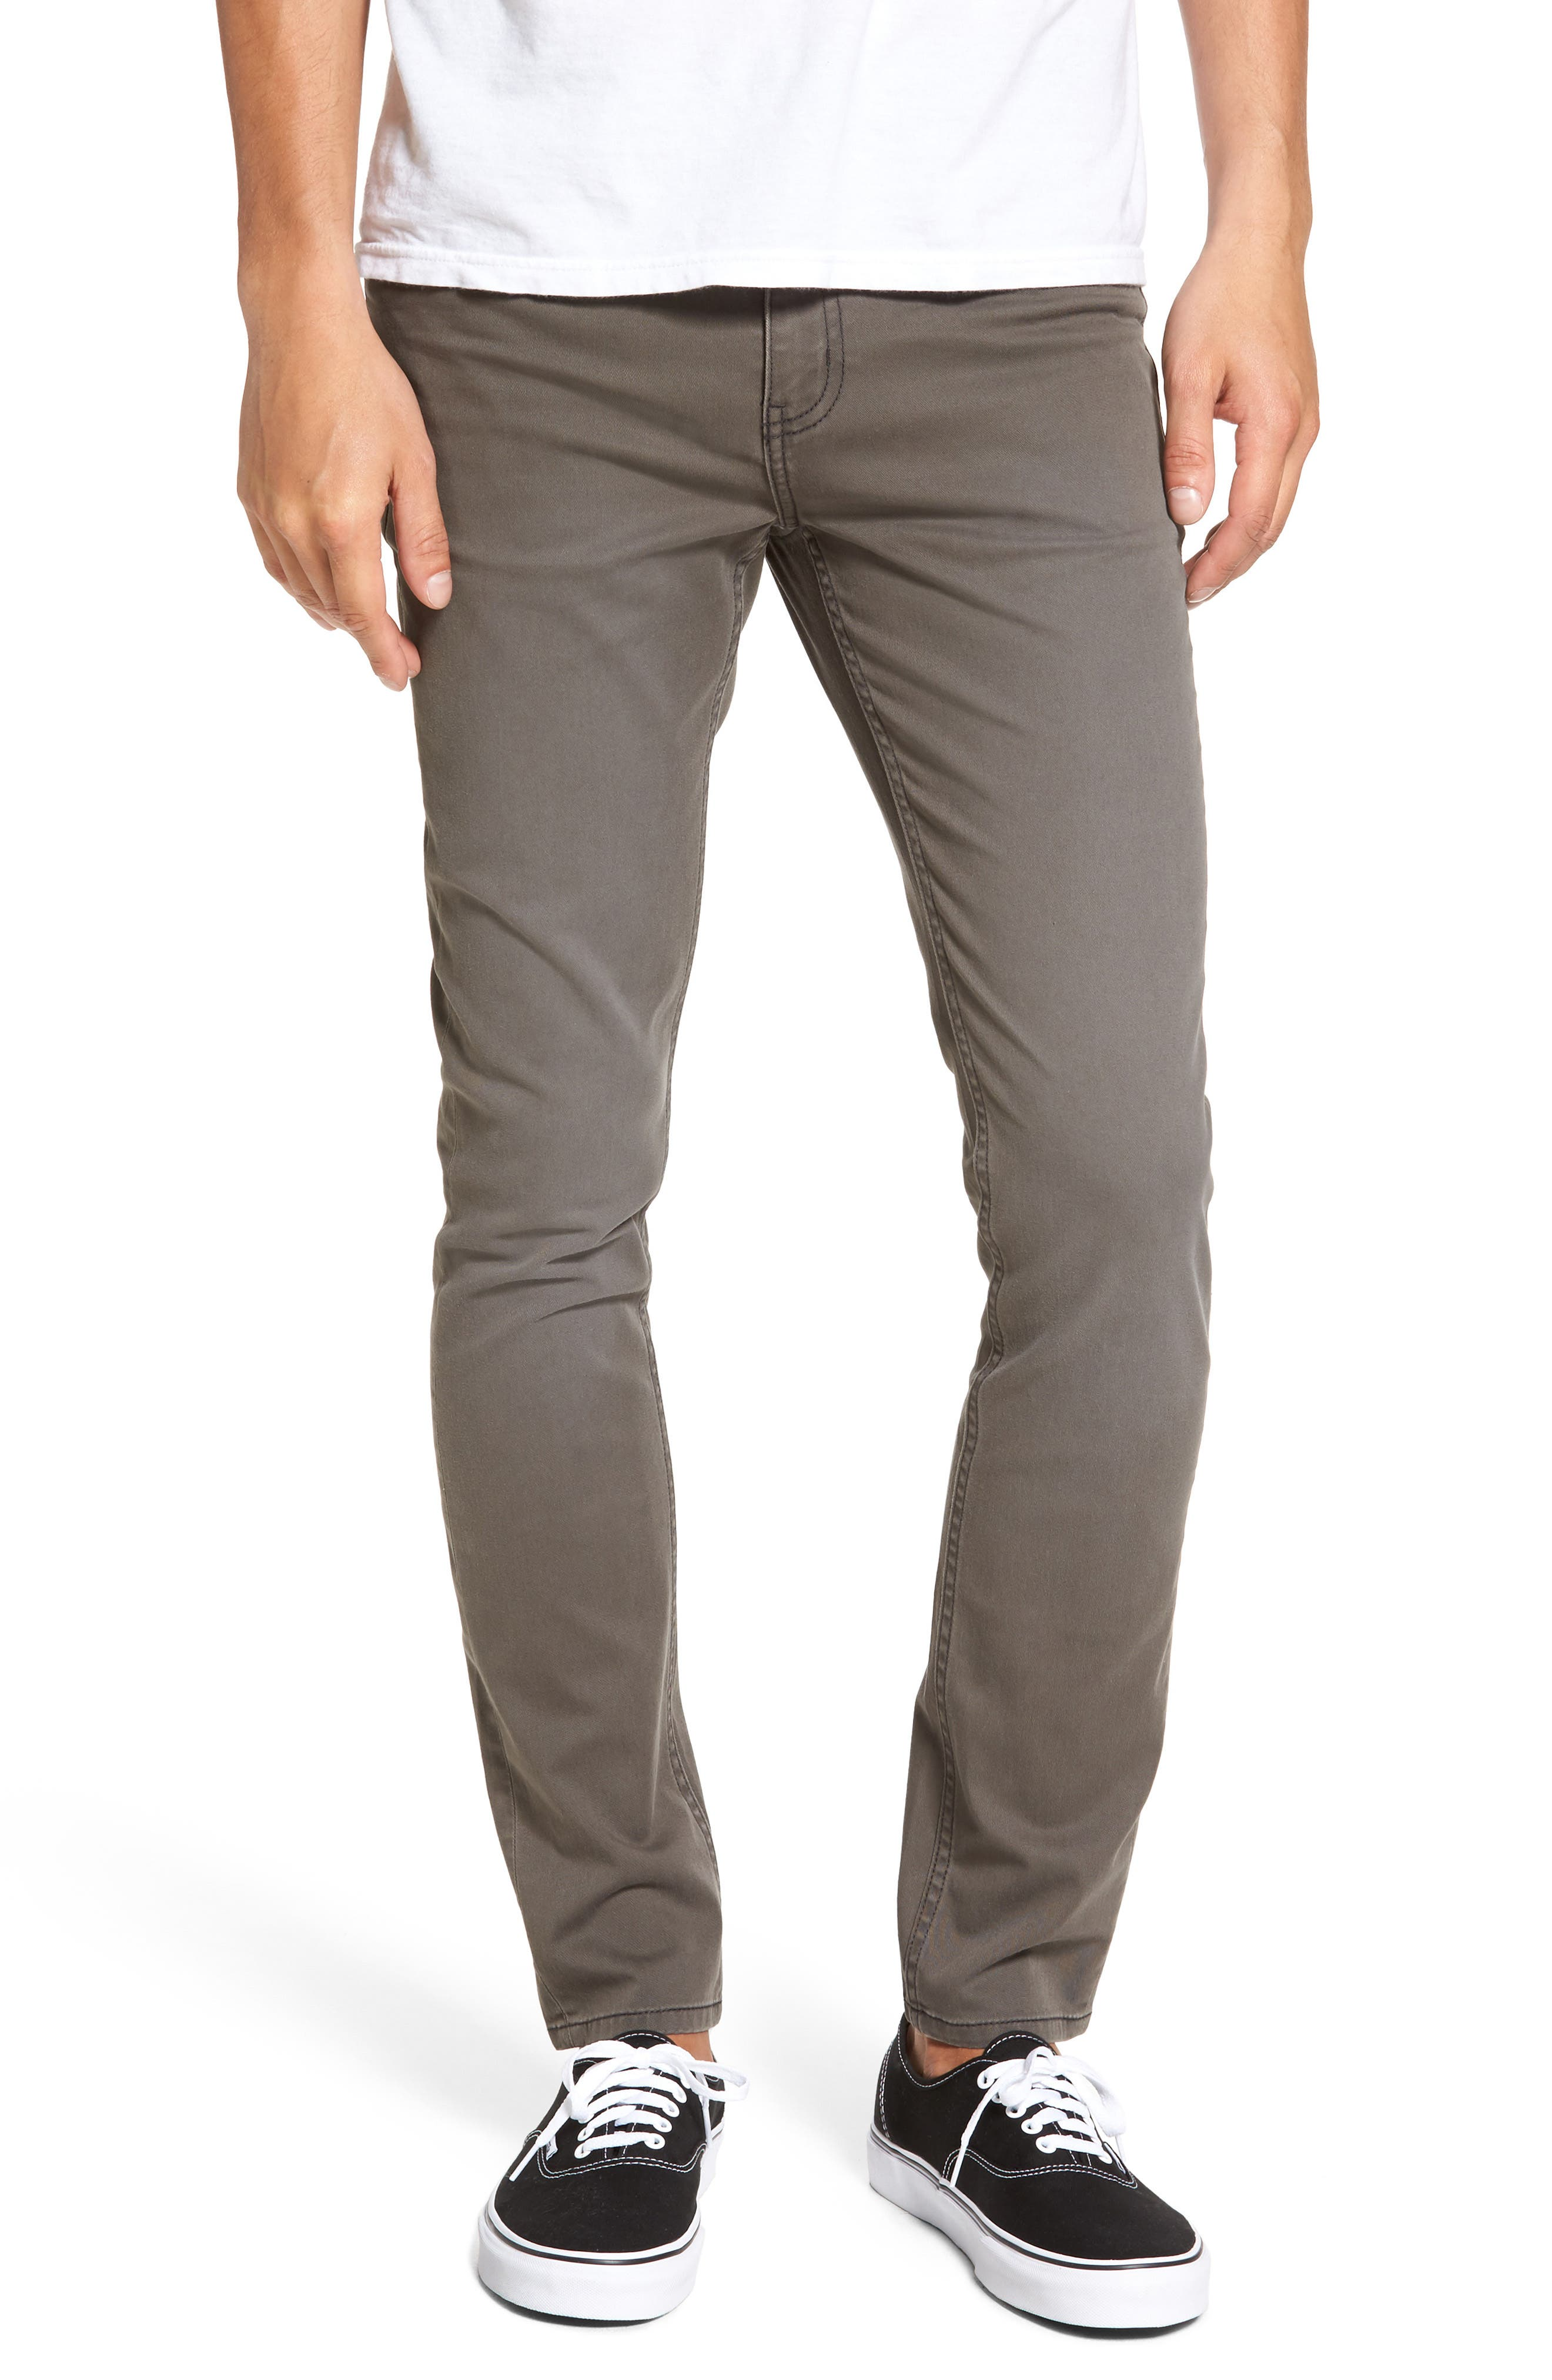 Tight Skinny Fit Jeans,                             Main thumbnail 1, color,                             250